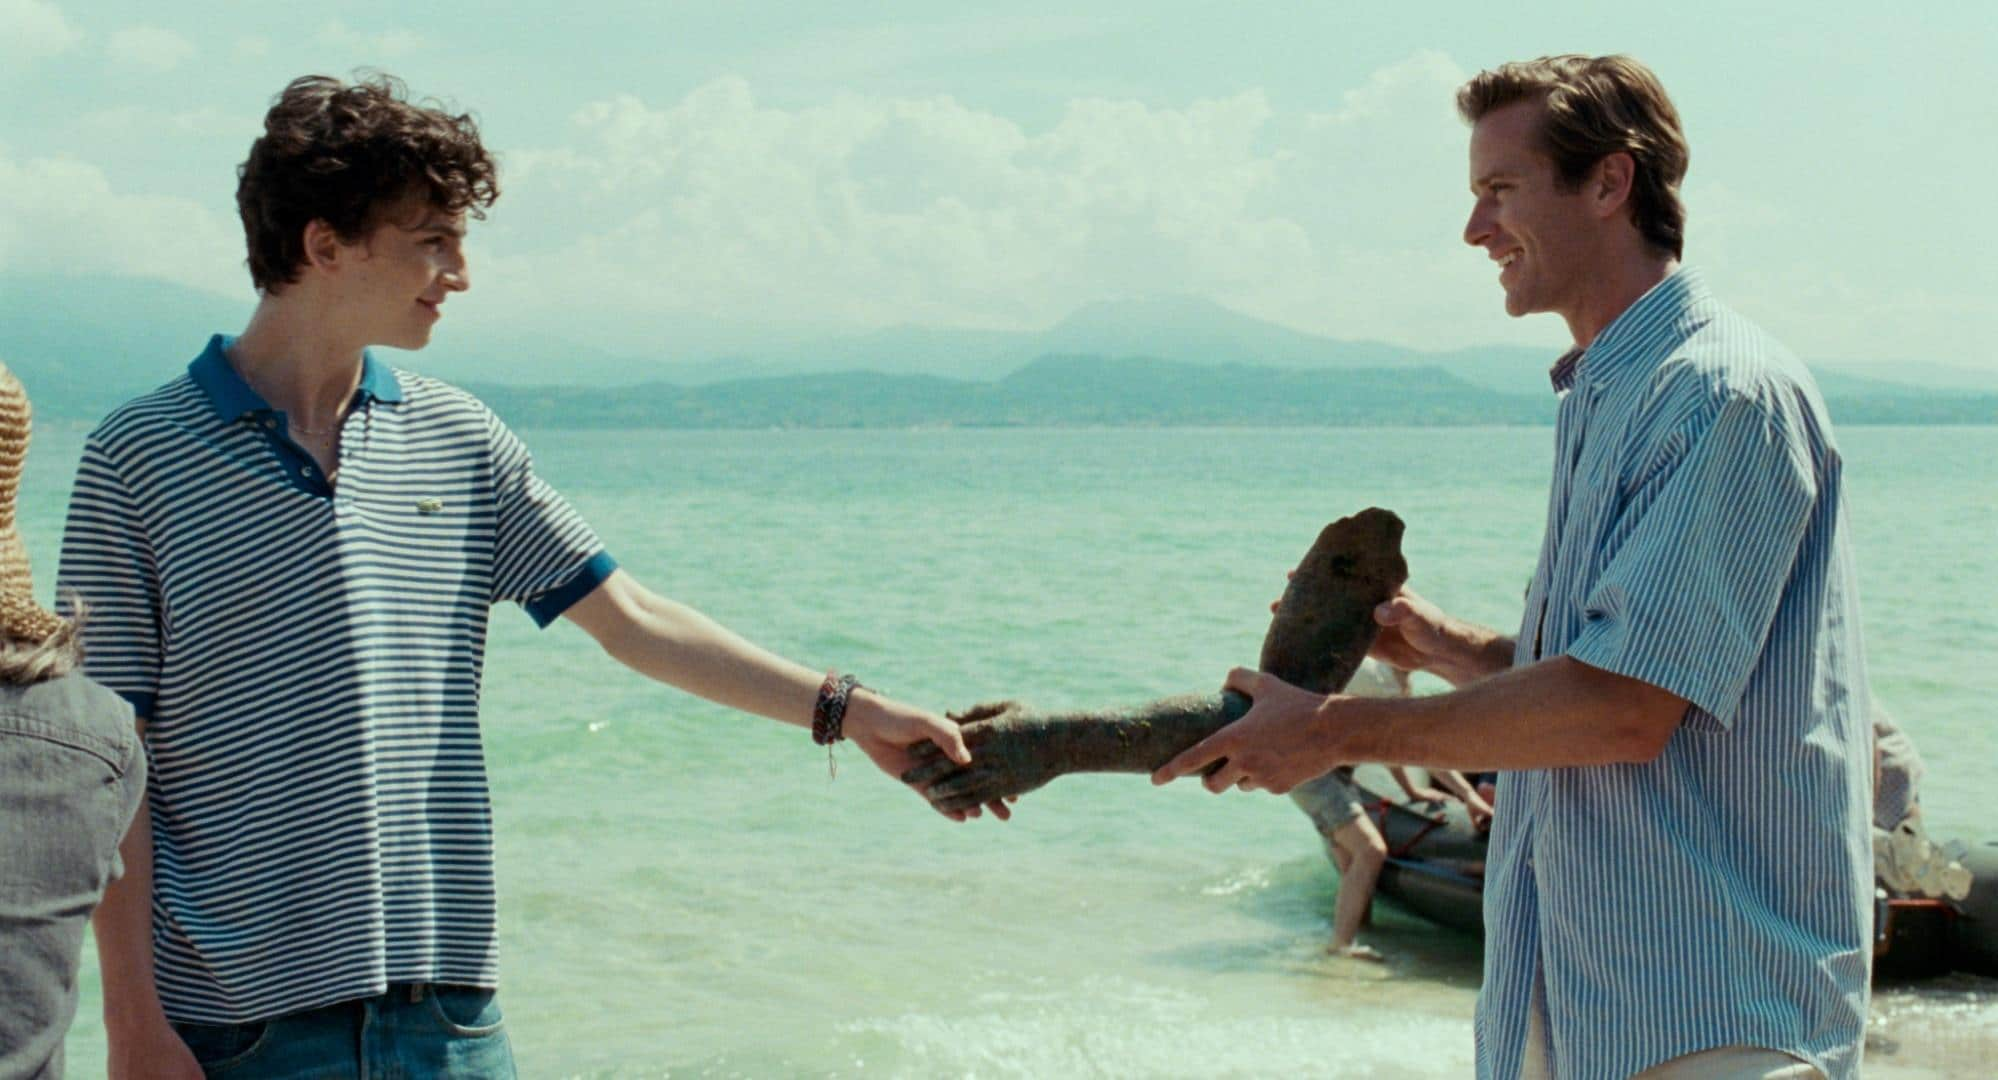 Call me by your name (2017) filmstill